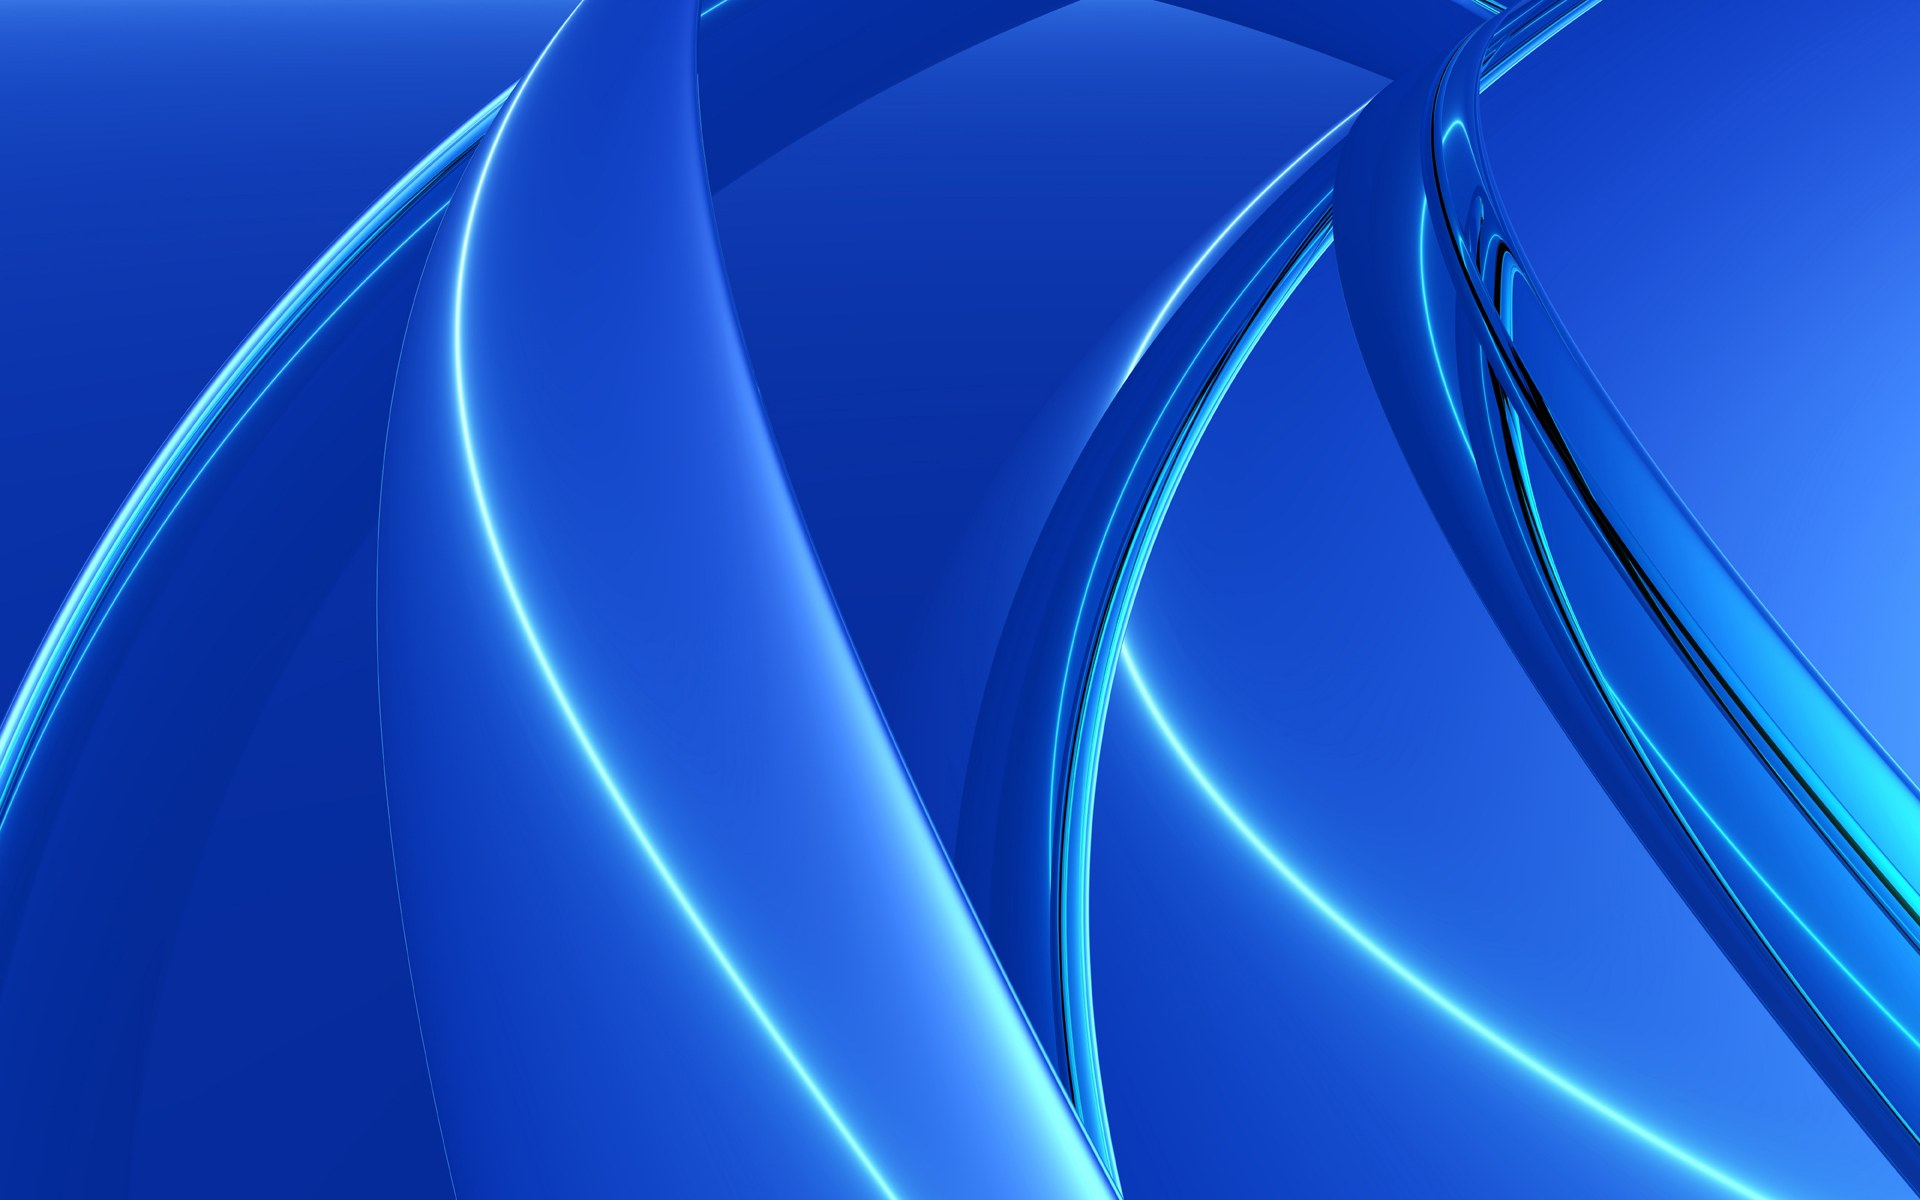 HD Abstract Blue Background - Blue Abstract Light Effect 1920*1200 NO ...